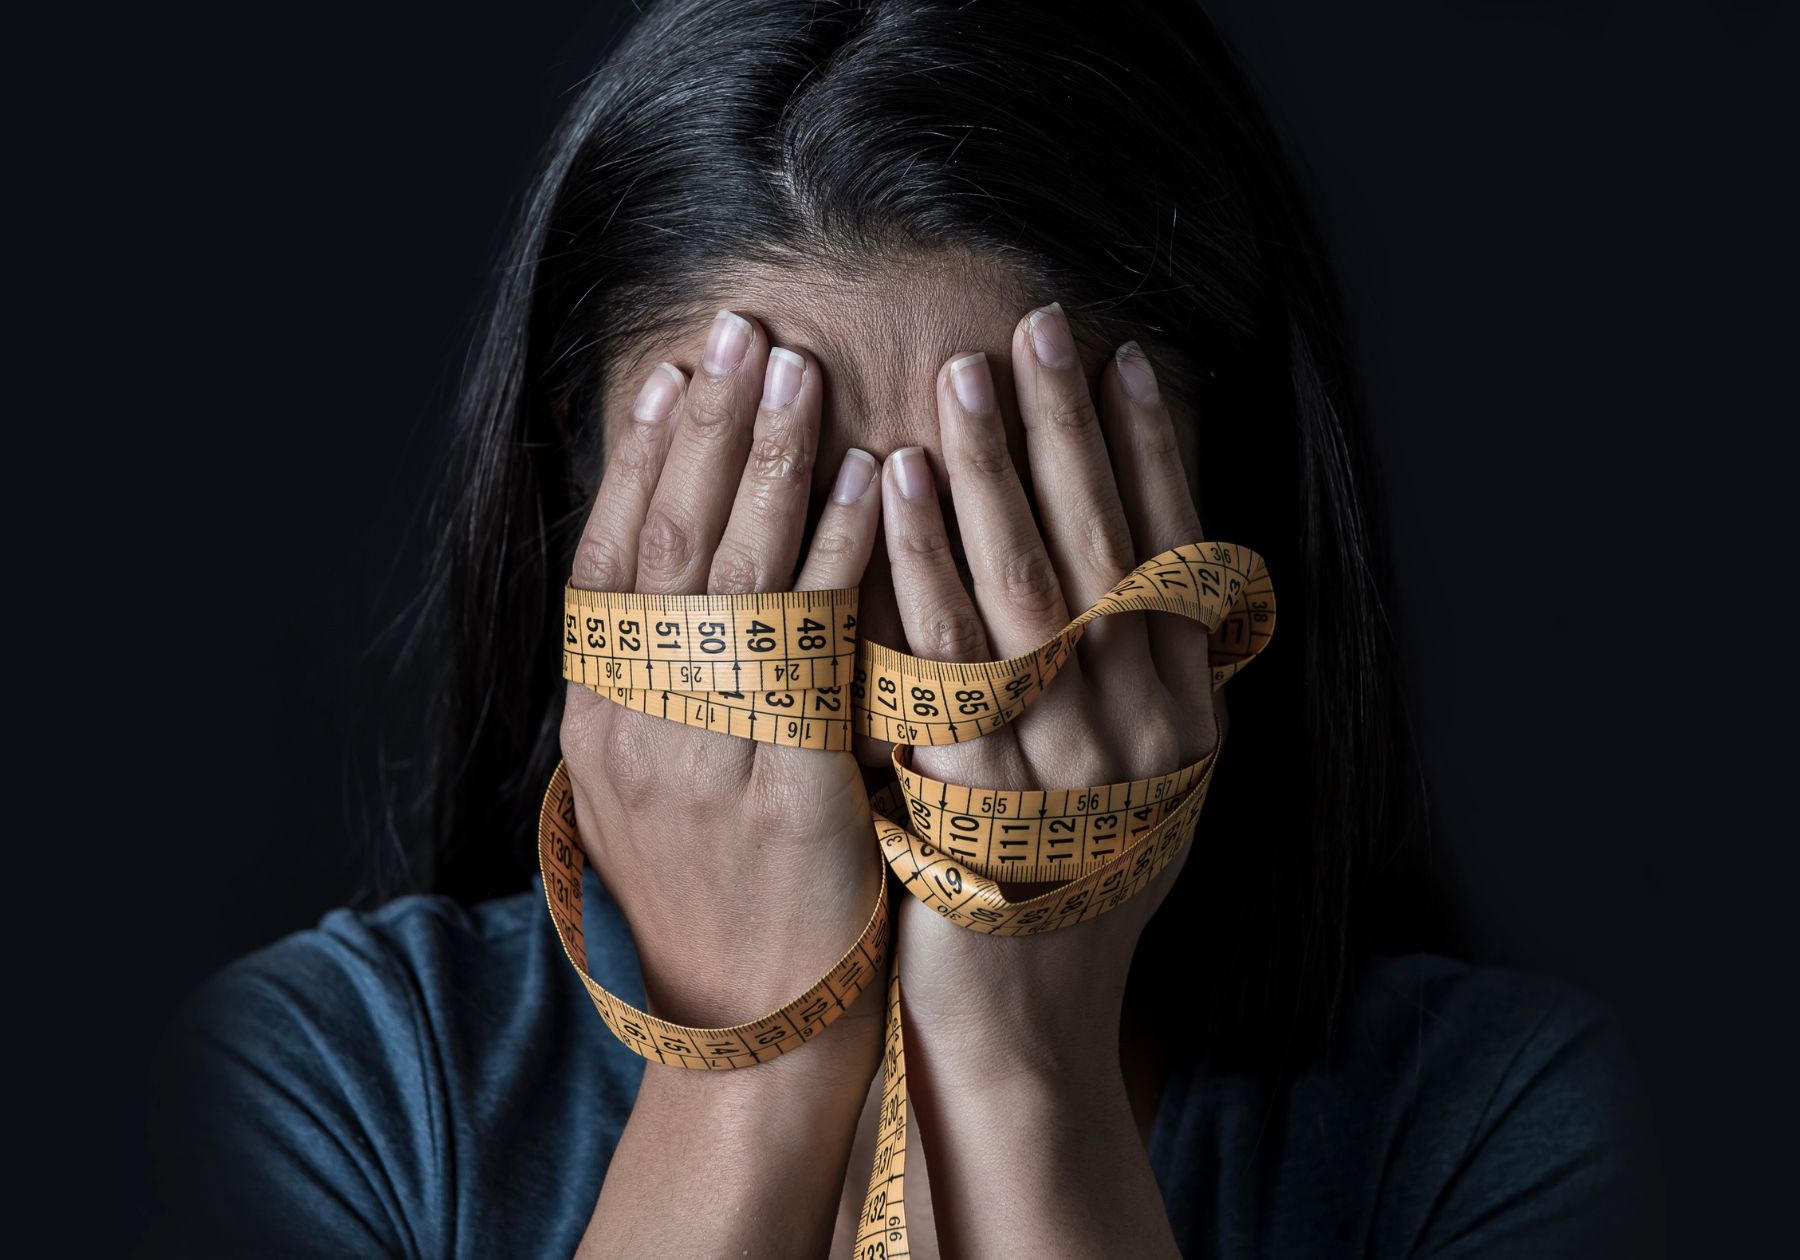 A brown-skinned woman with straight black hair covers her face with her hands. A yellow tape-measure is wrapped around her hands.